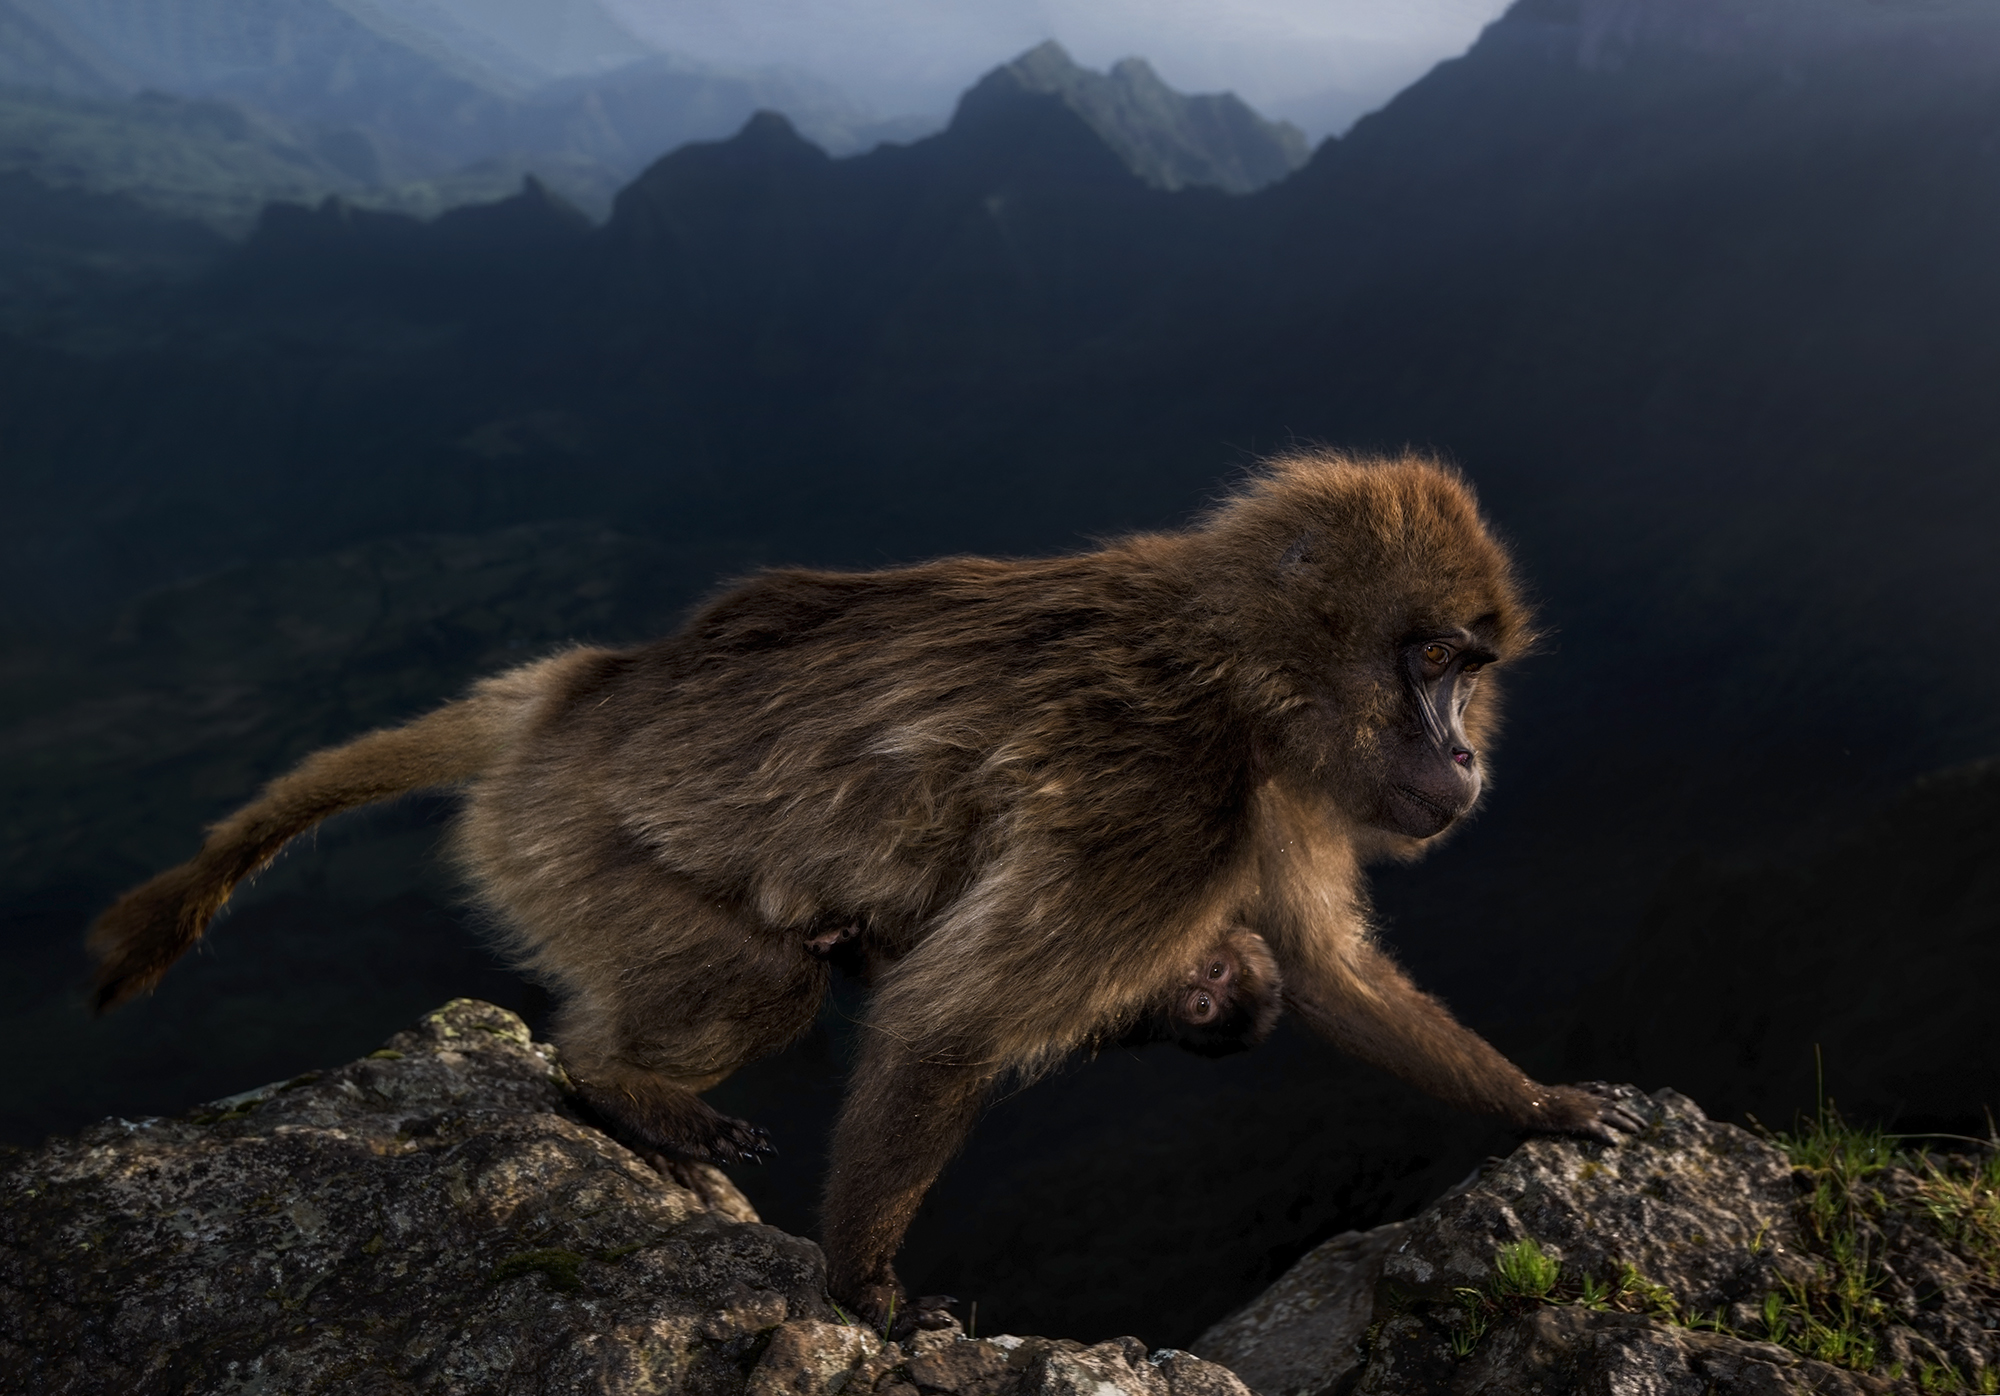 Geladas are a grass‑eating primate found only on the Ethiopian plateau